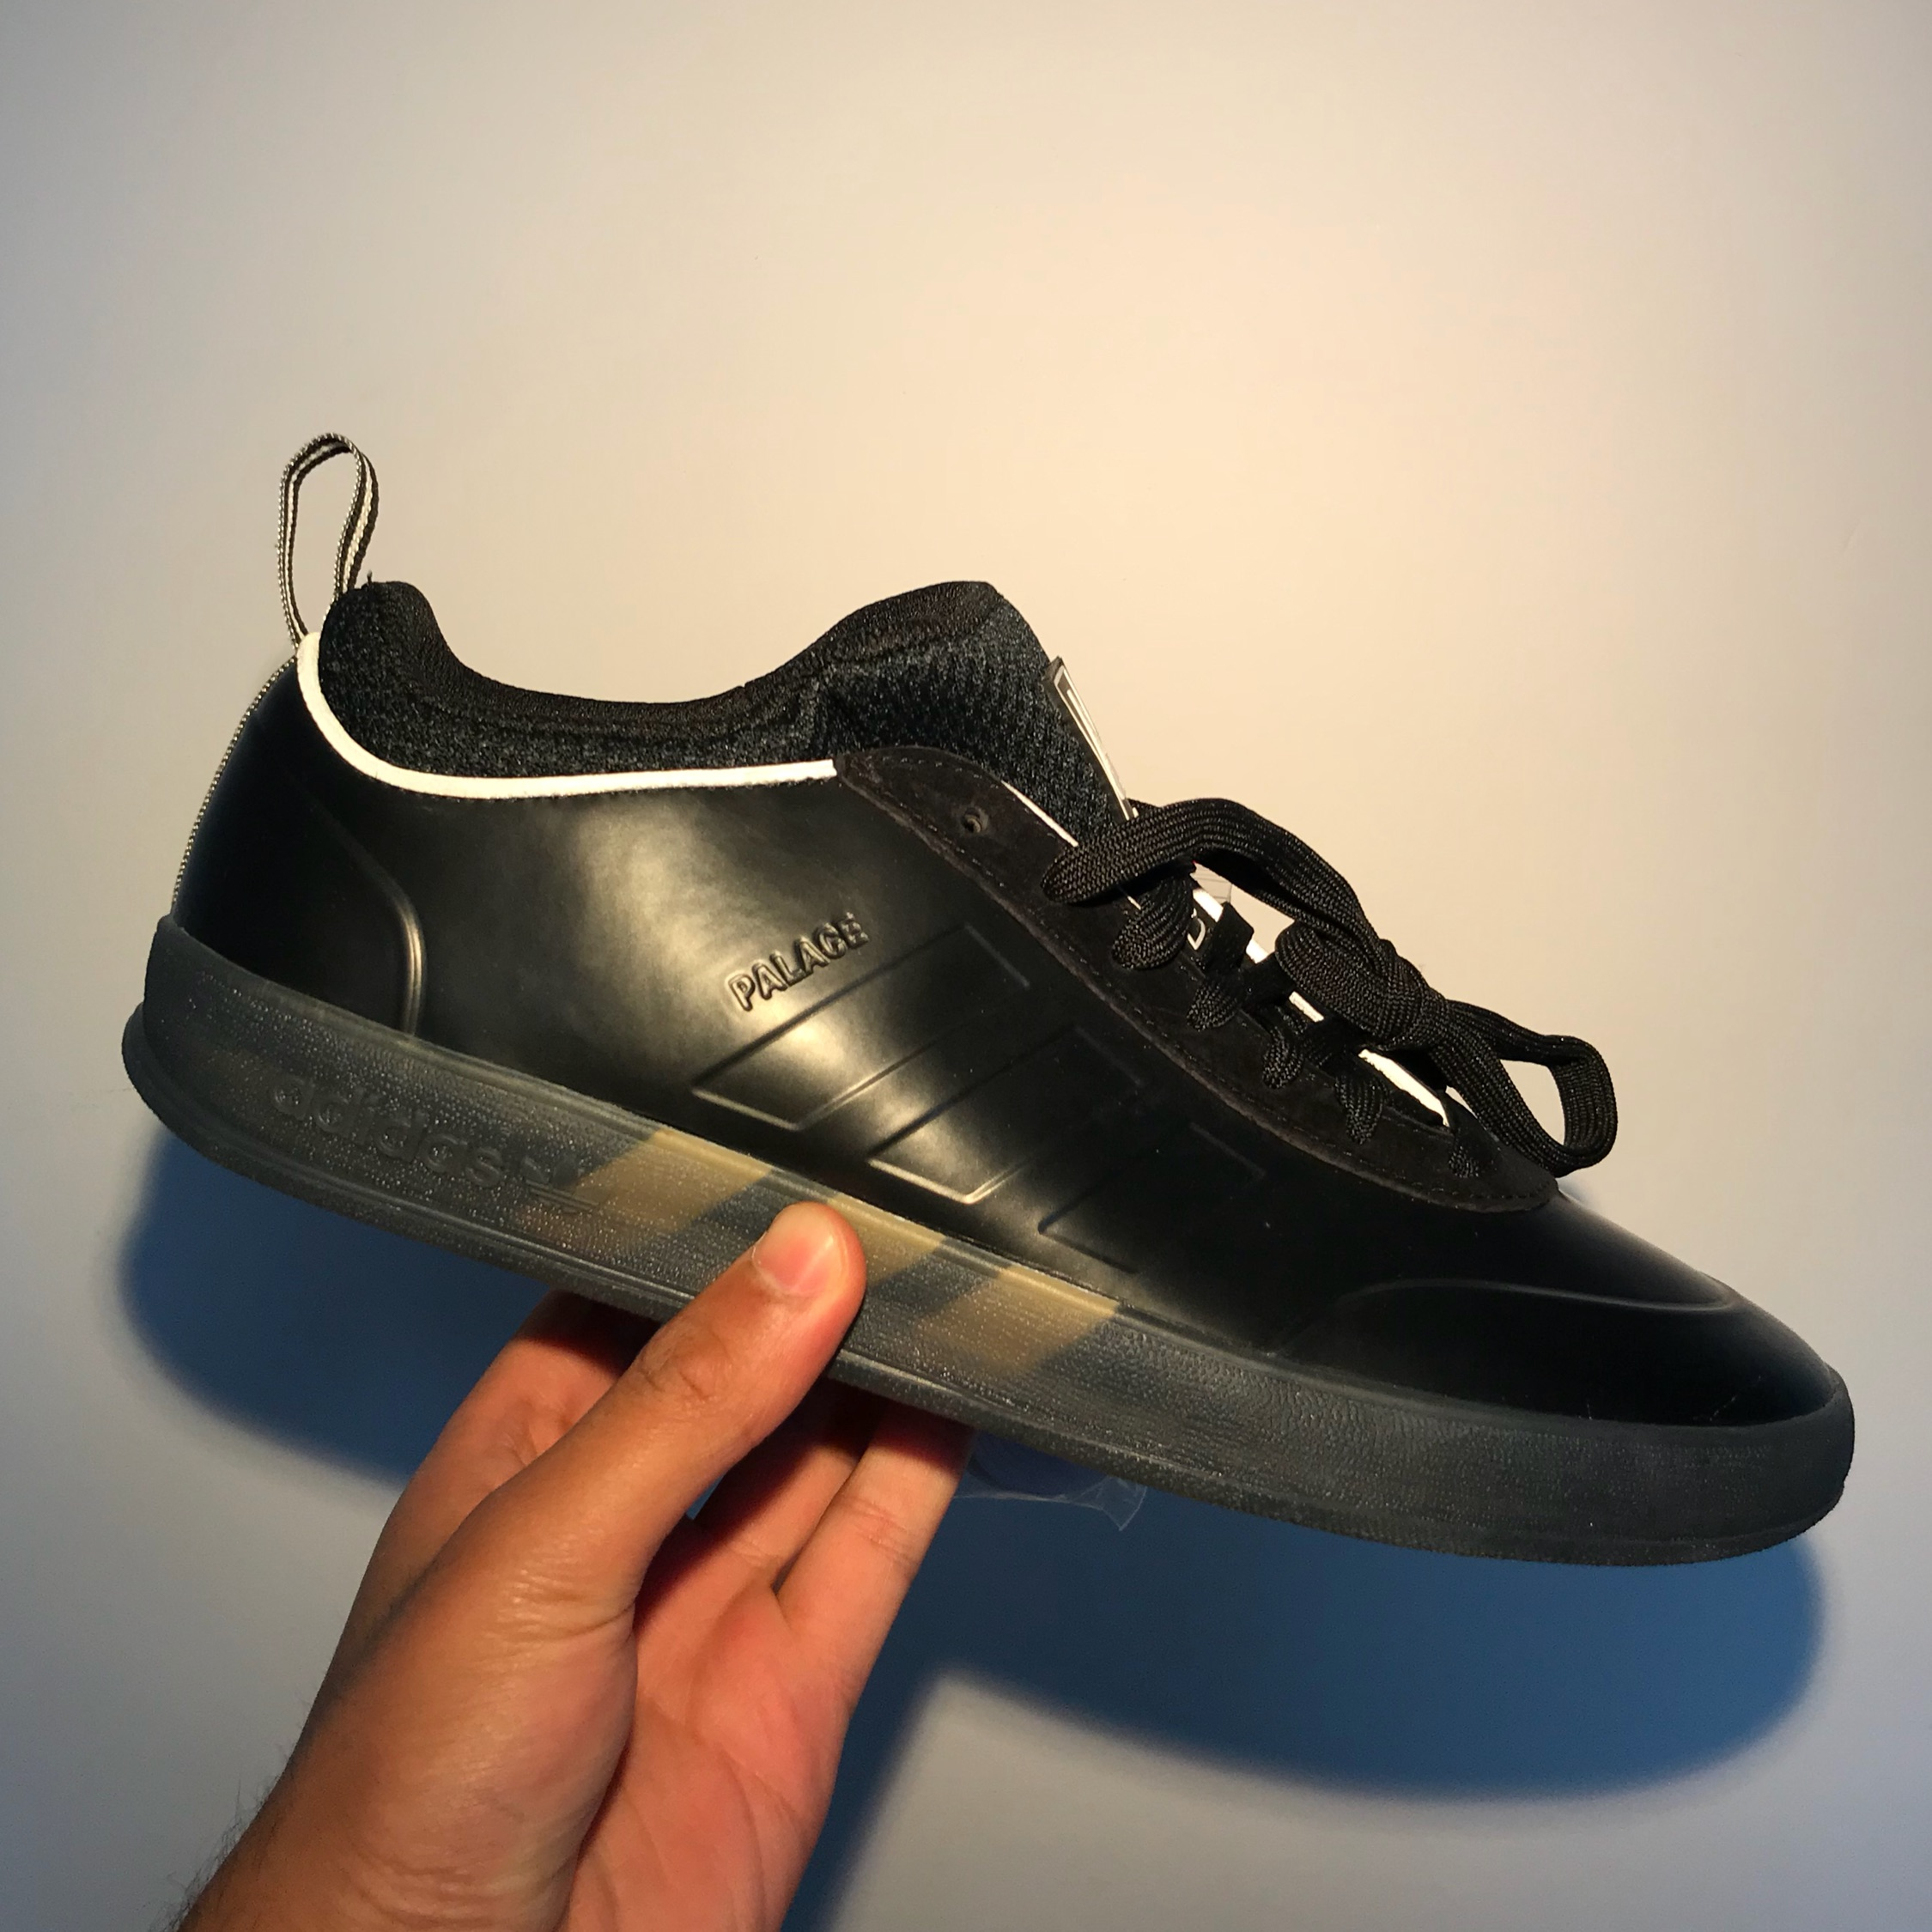 Palace X Adidas Pro 2 Skate Shoes In Black